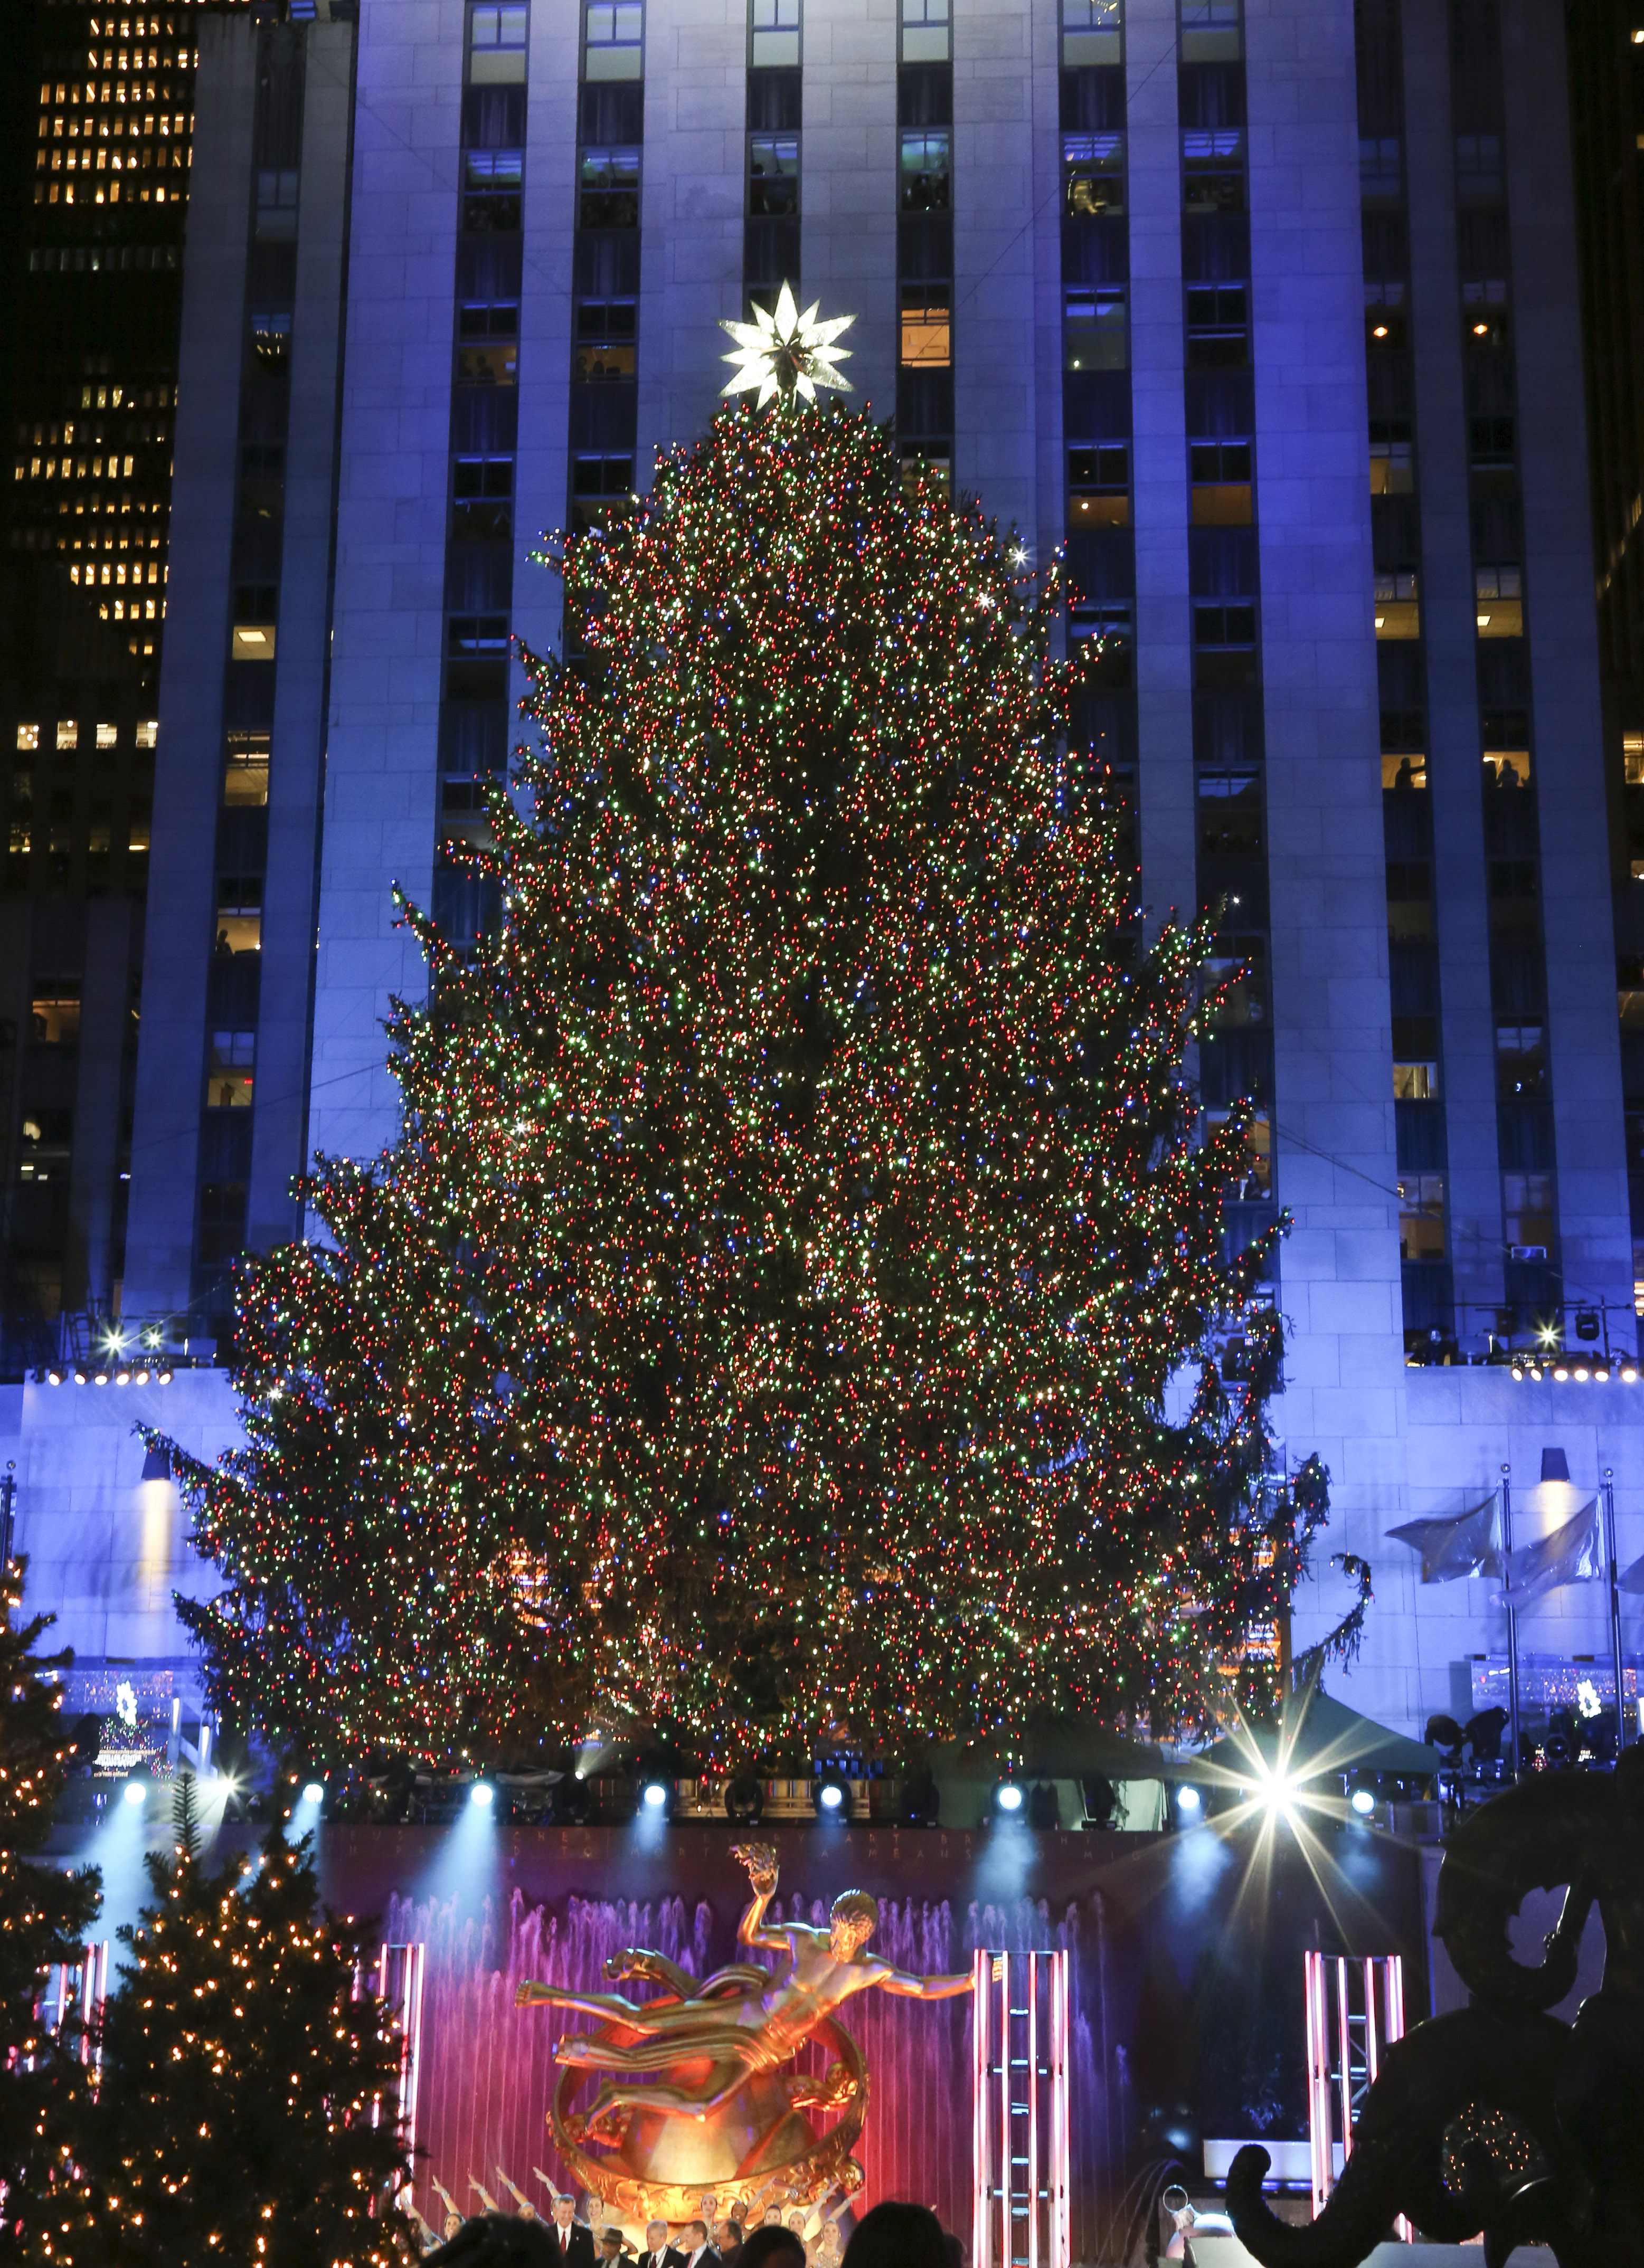 It's Here! Rockefeller Center's Christmas Tree is Officially Chosen for 2018